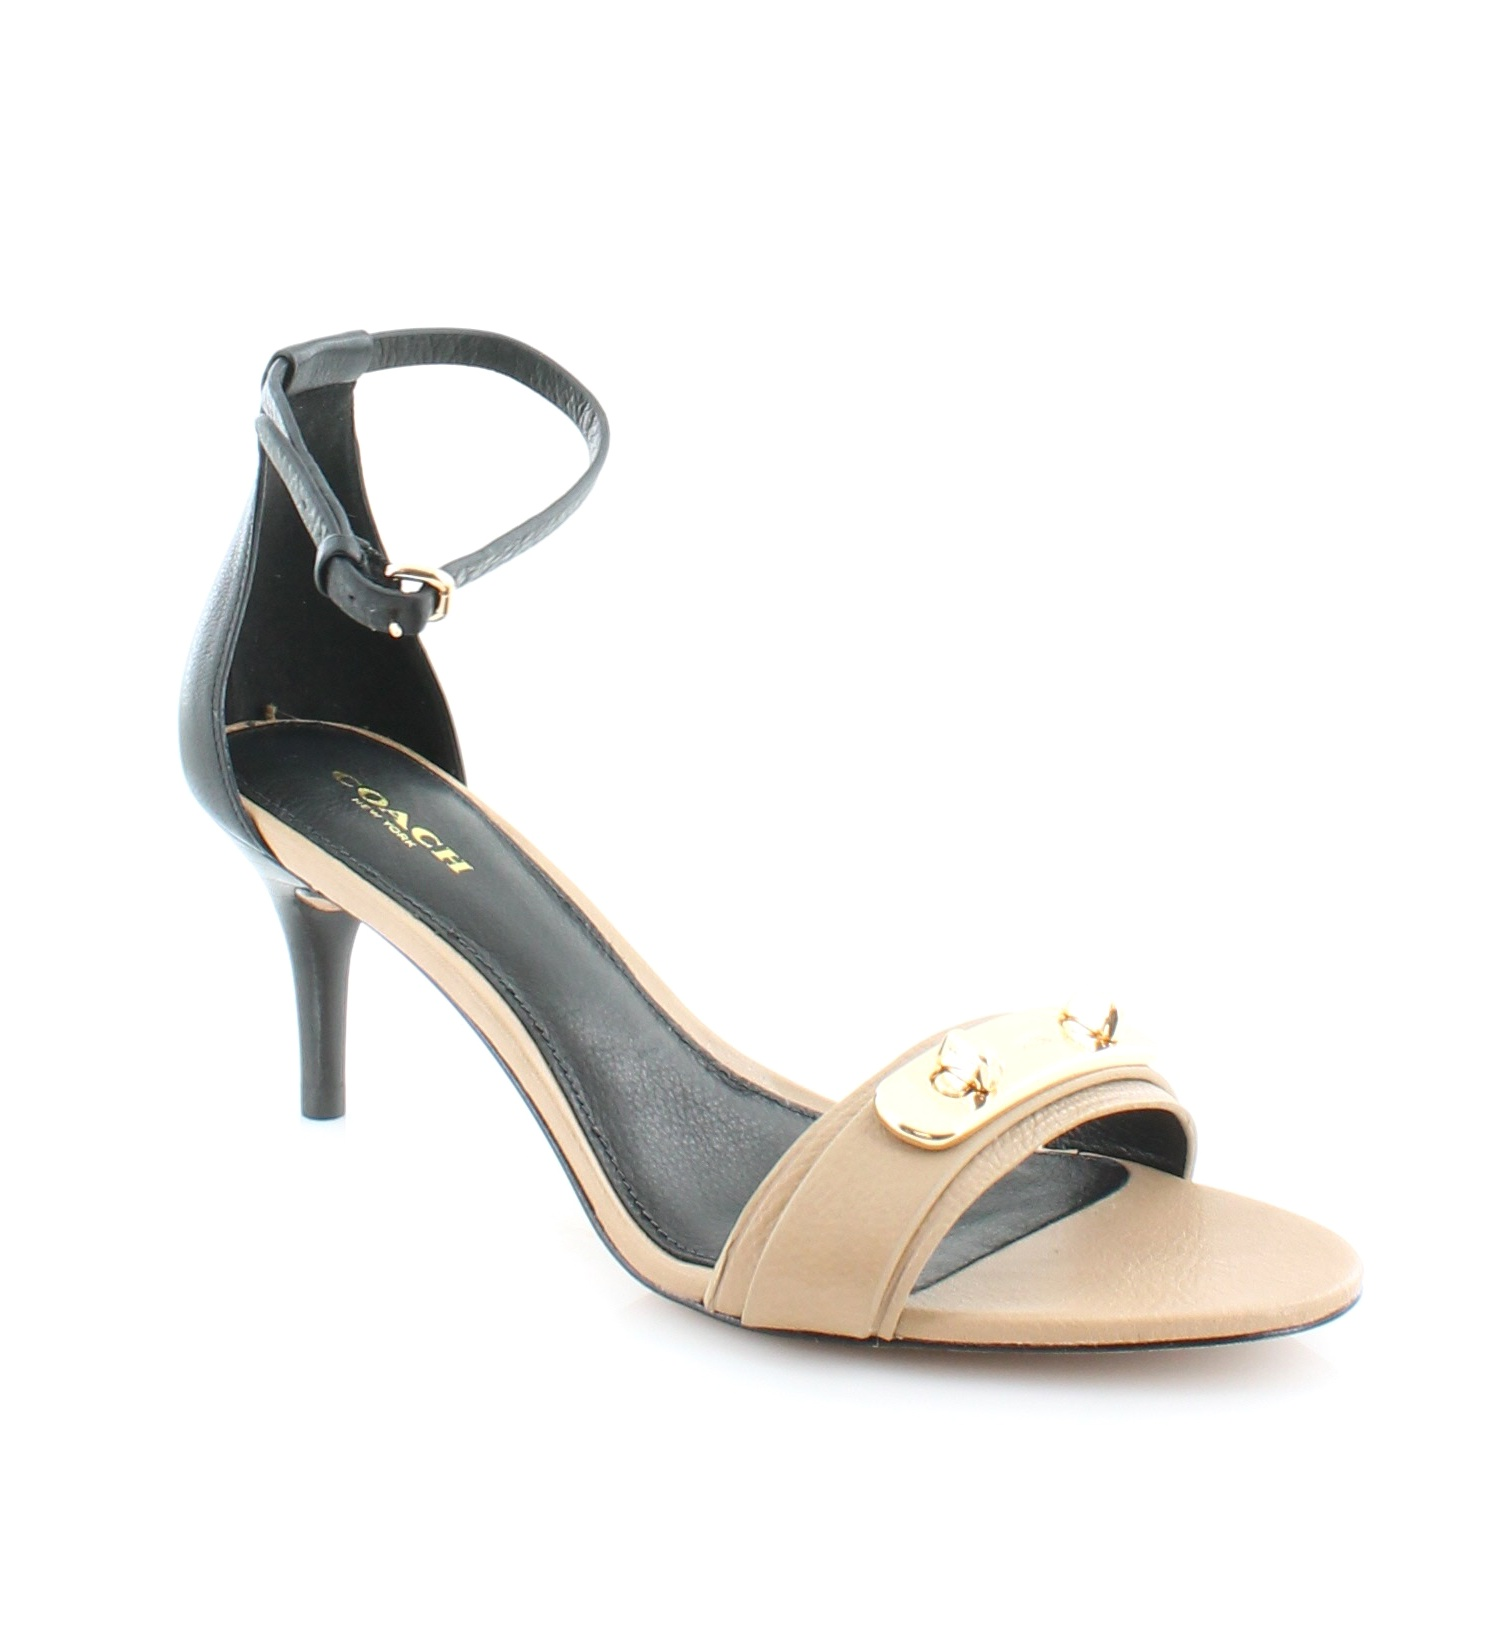 Marcella At Town Center: Coach Marcella Women's Heels